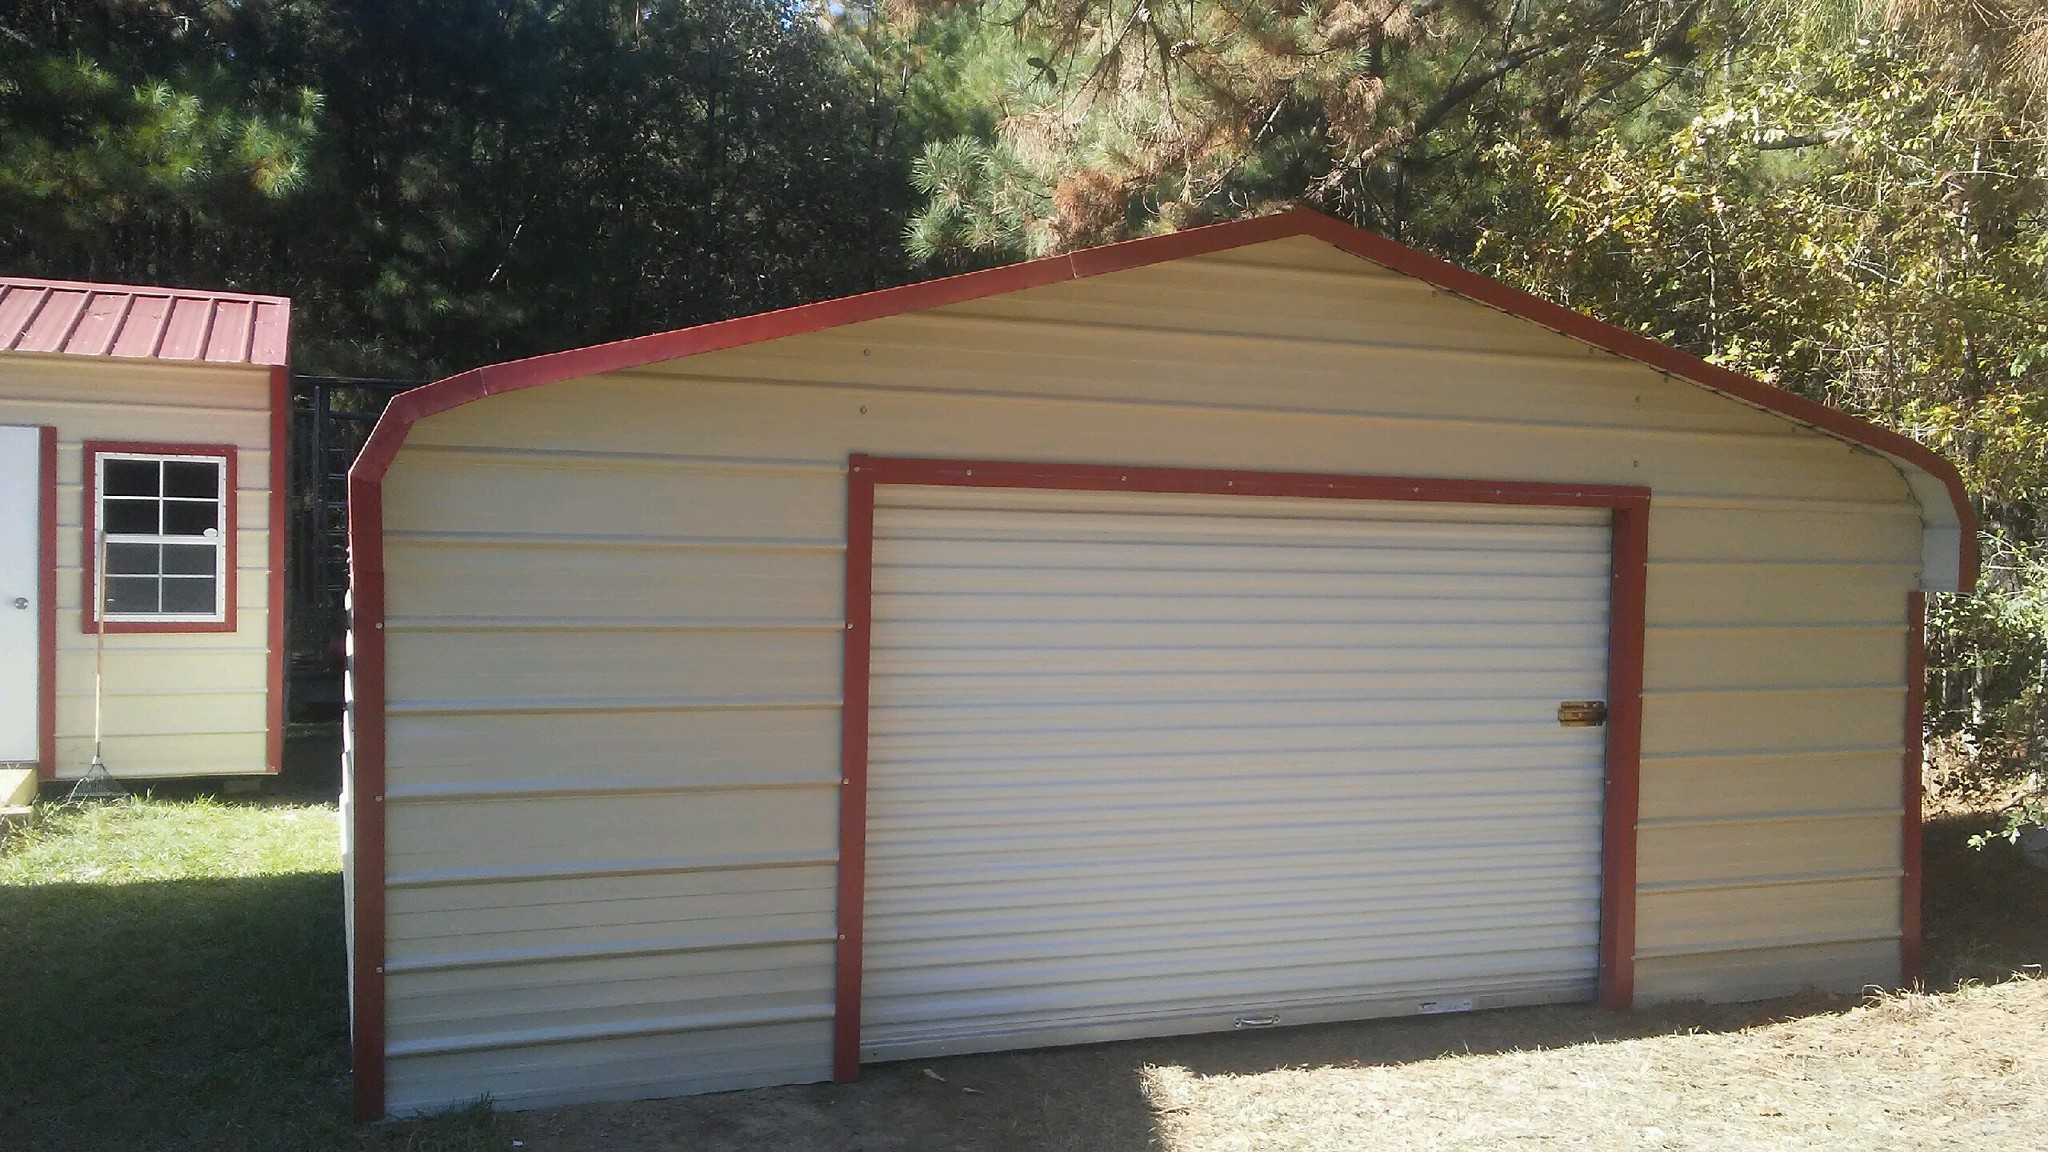 Sheds - Portable Storage Buildings | Hattiesburg, Columbia